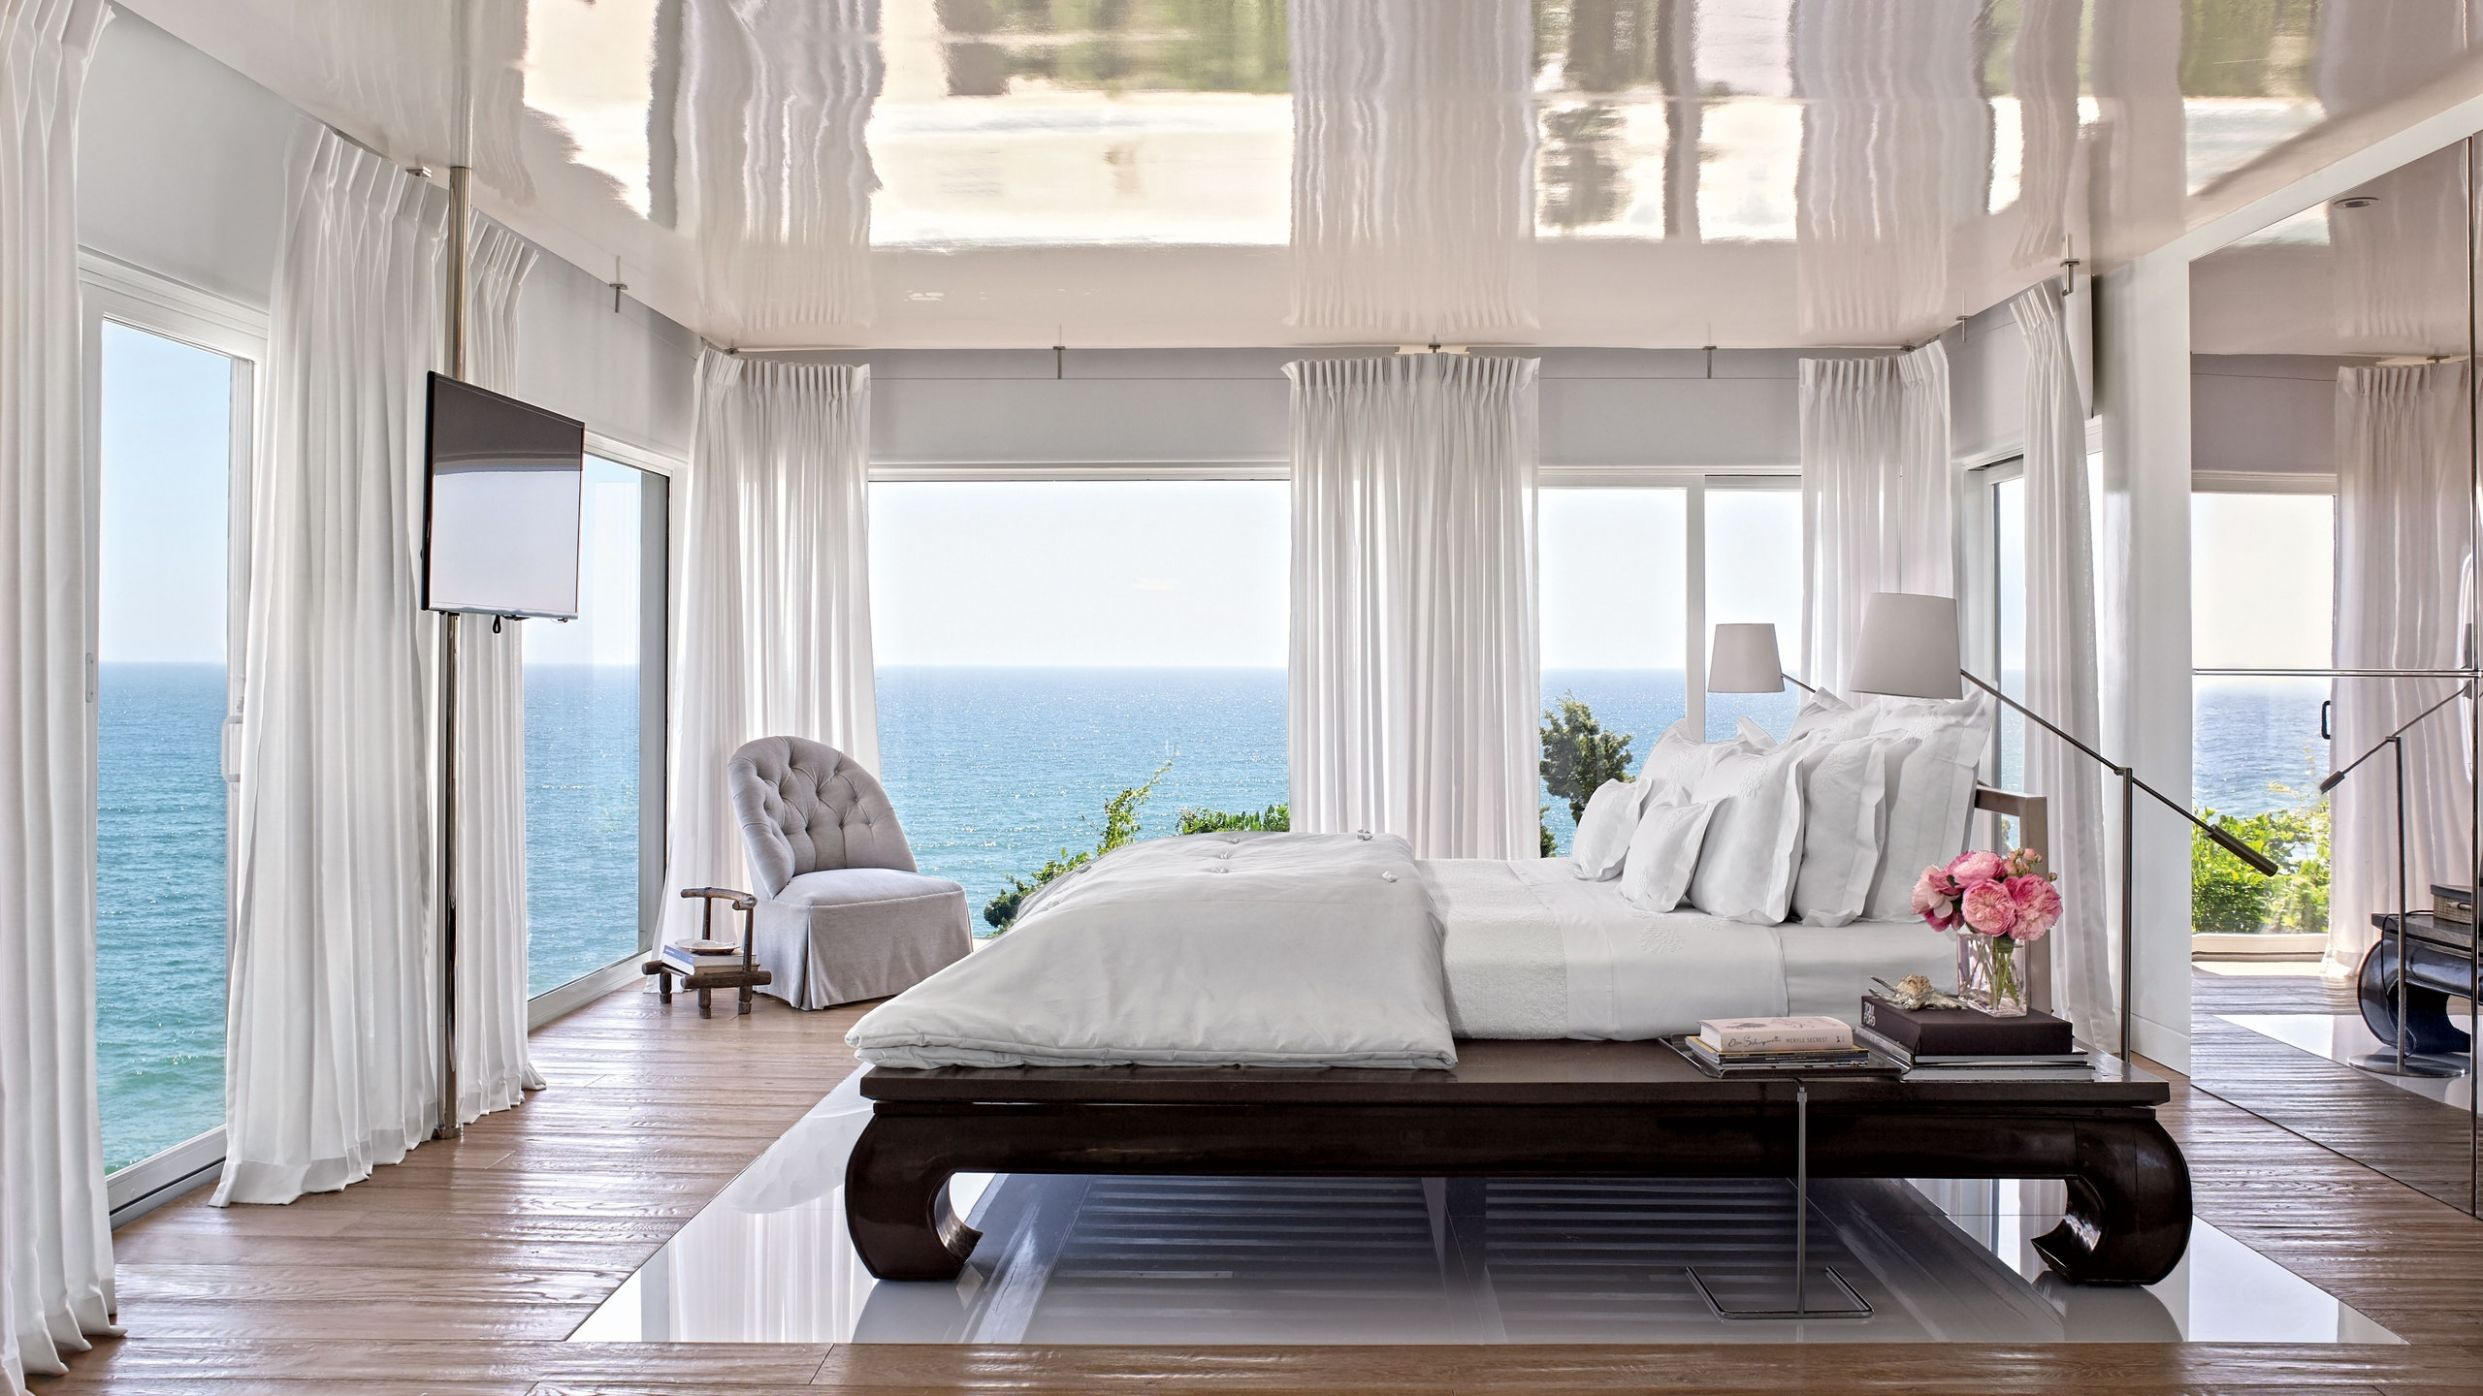 10 Window Treatment Ideas Tailored to Your Space | Architectural Digest